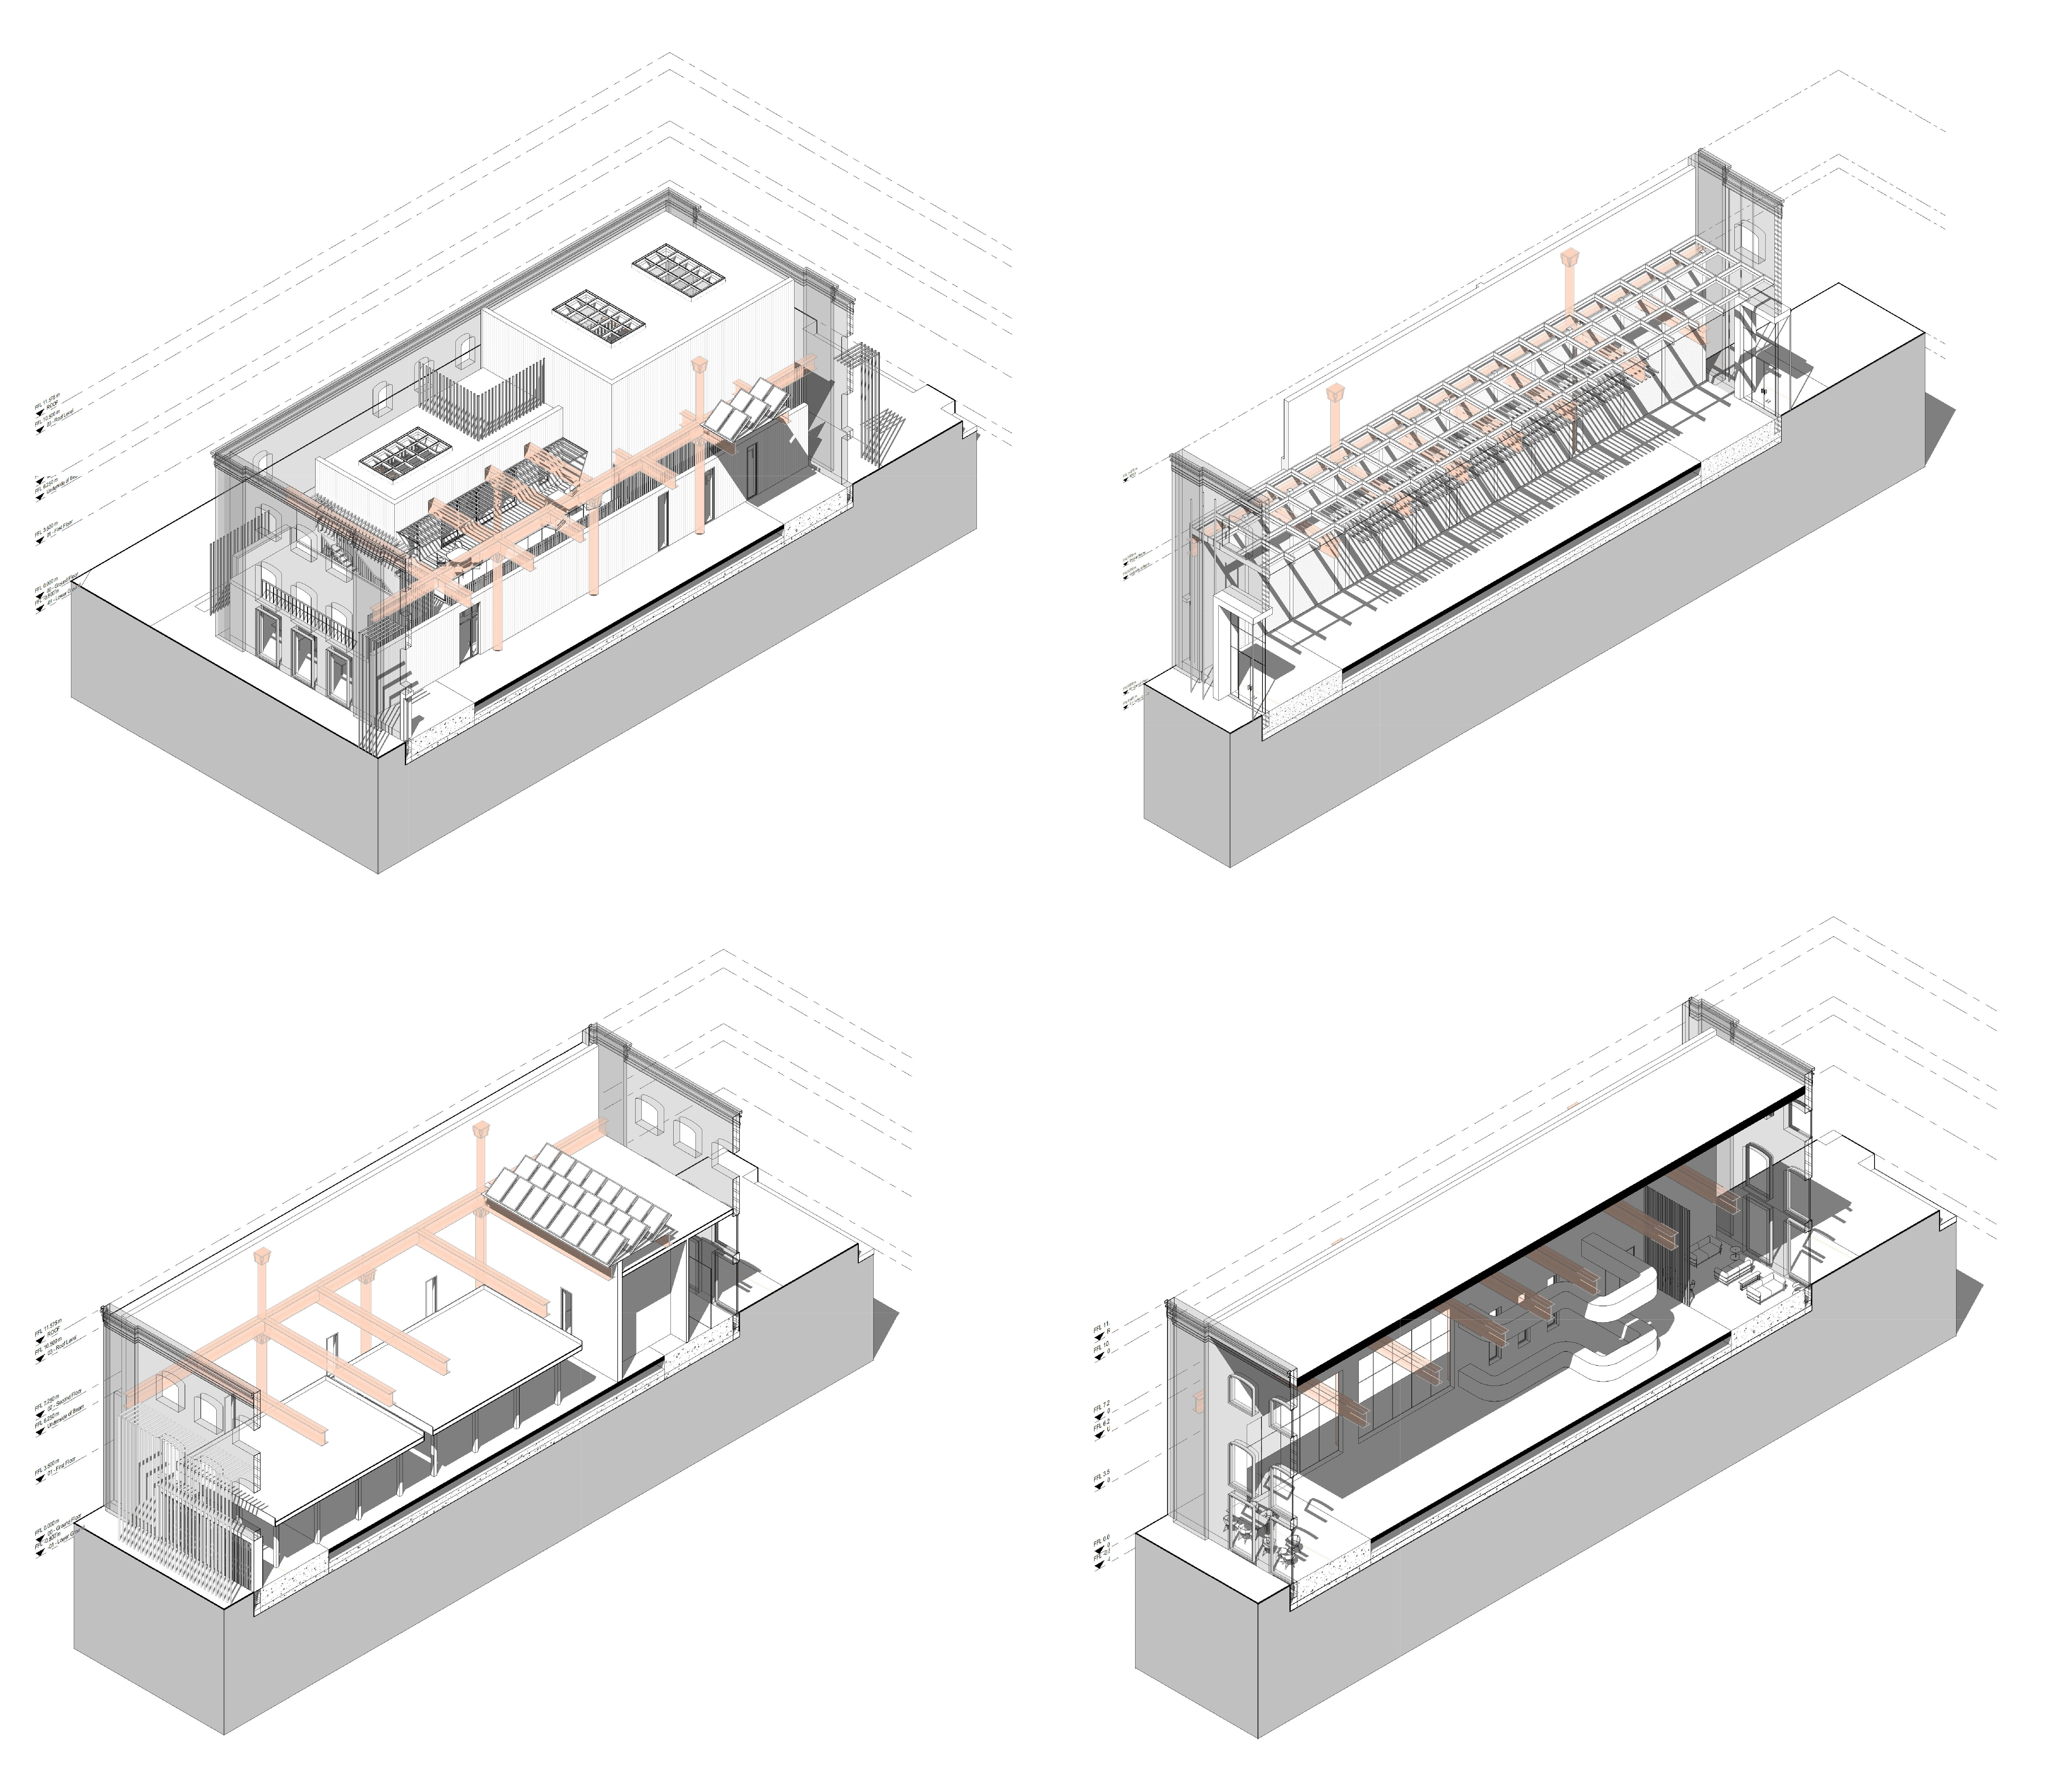 Axonometrics showing the intended design of the building